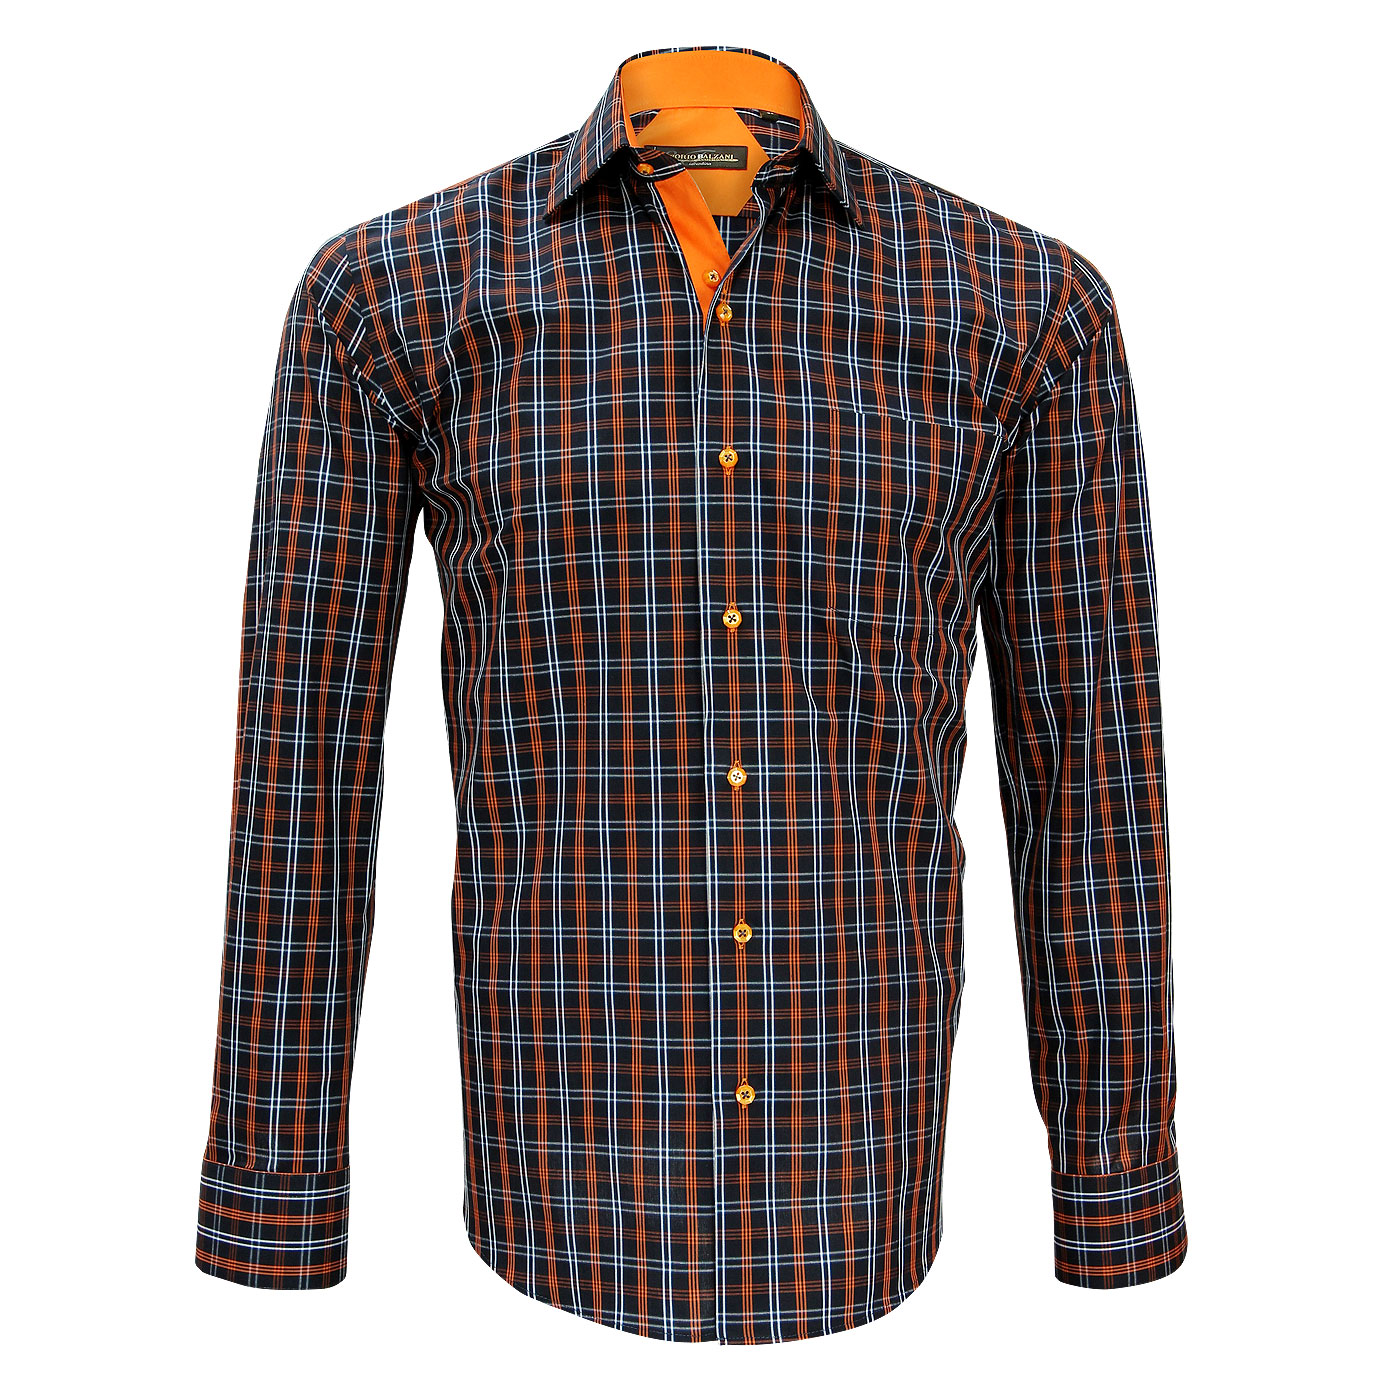 Orange shirt, men's shirt, shirt sales: Webmenshirts